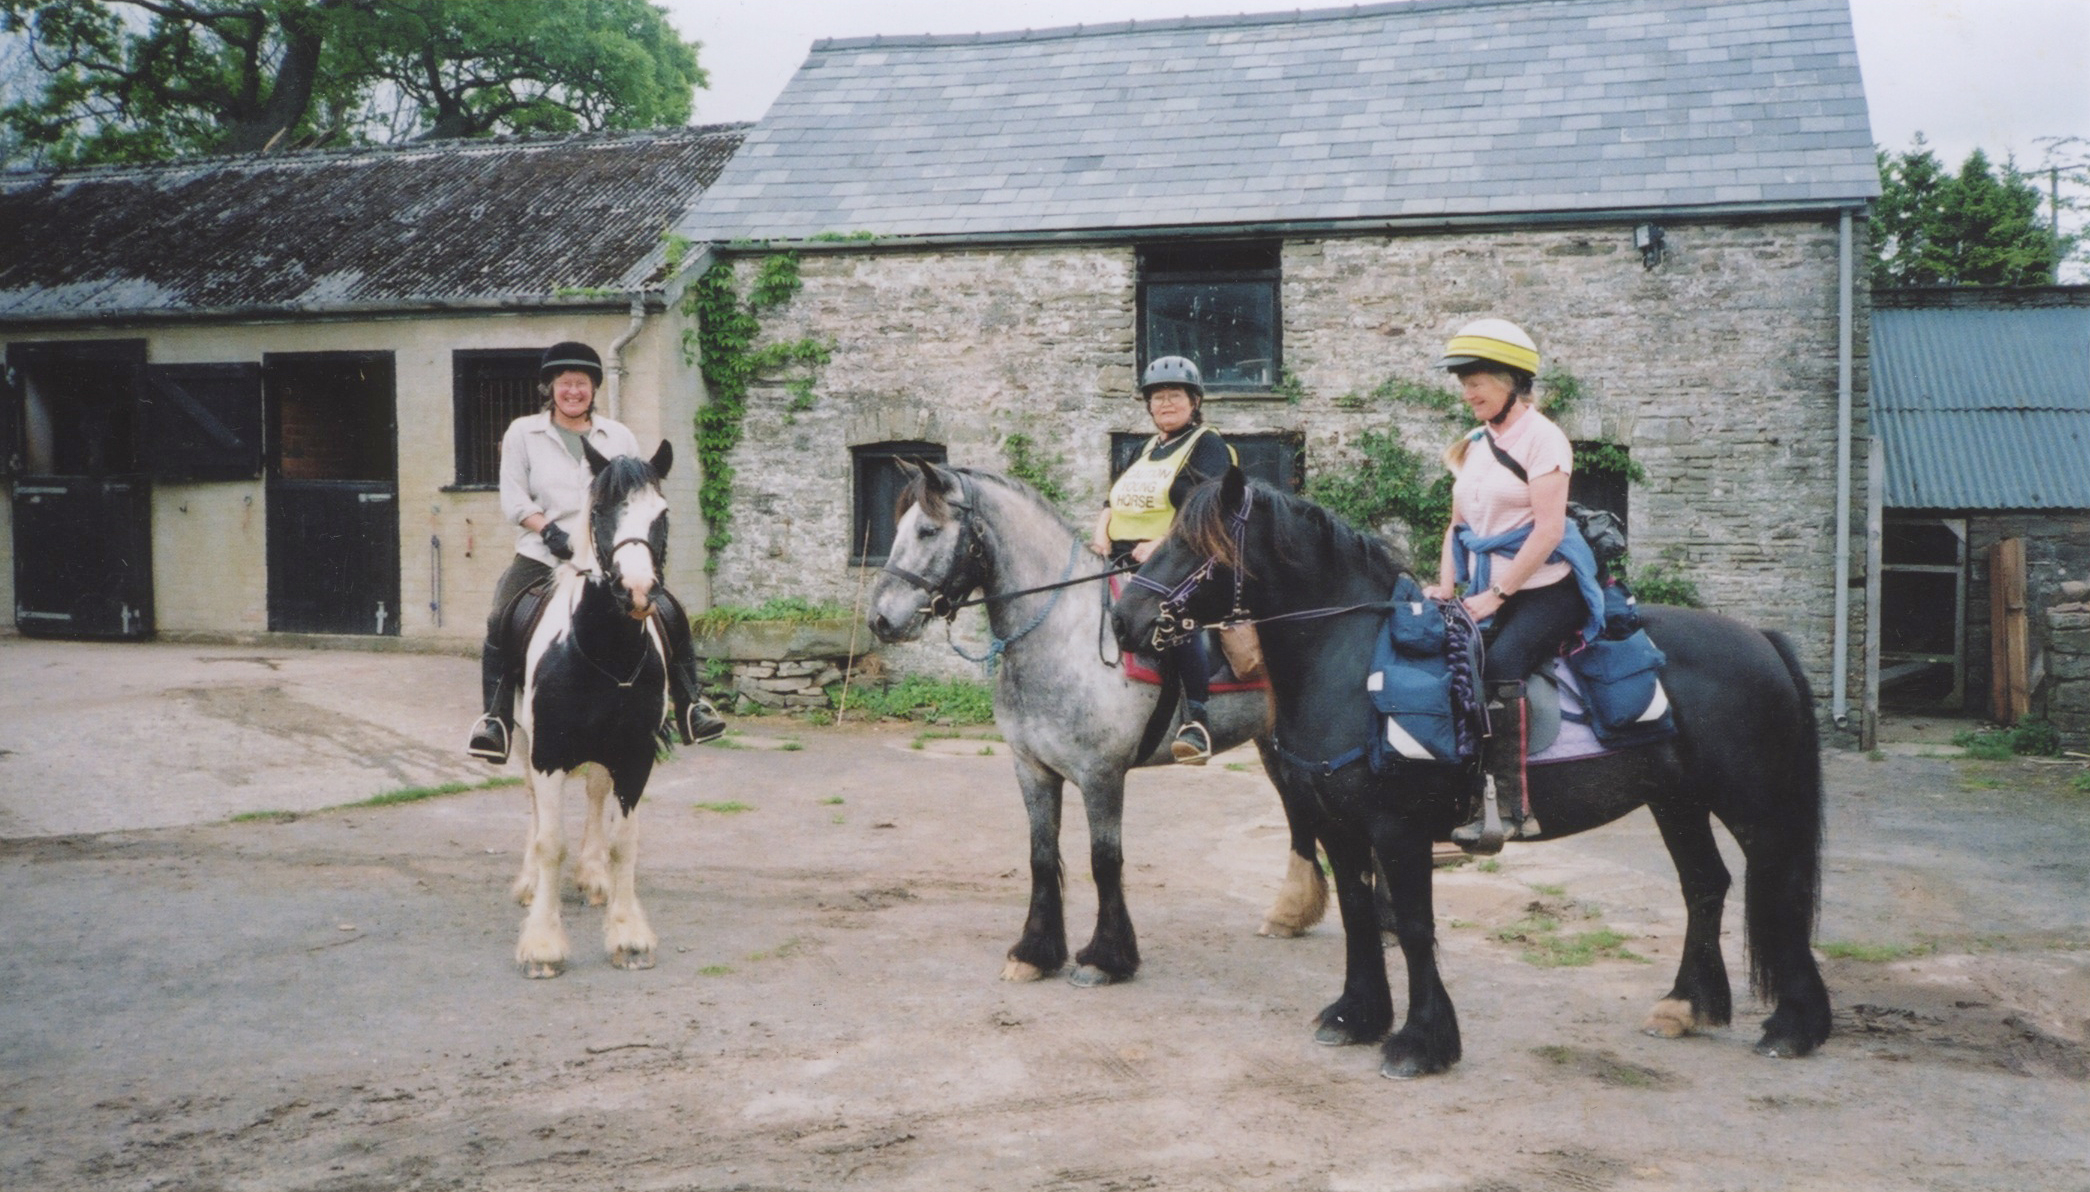 riders in a stable yard